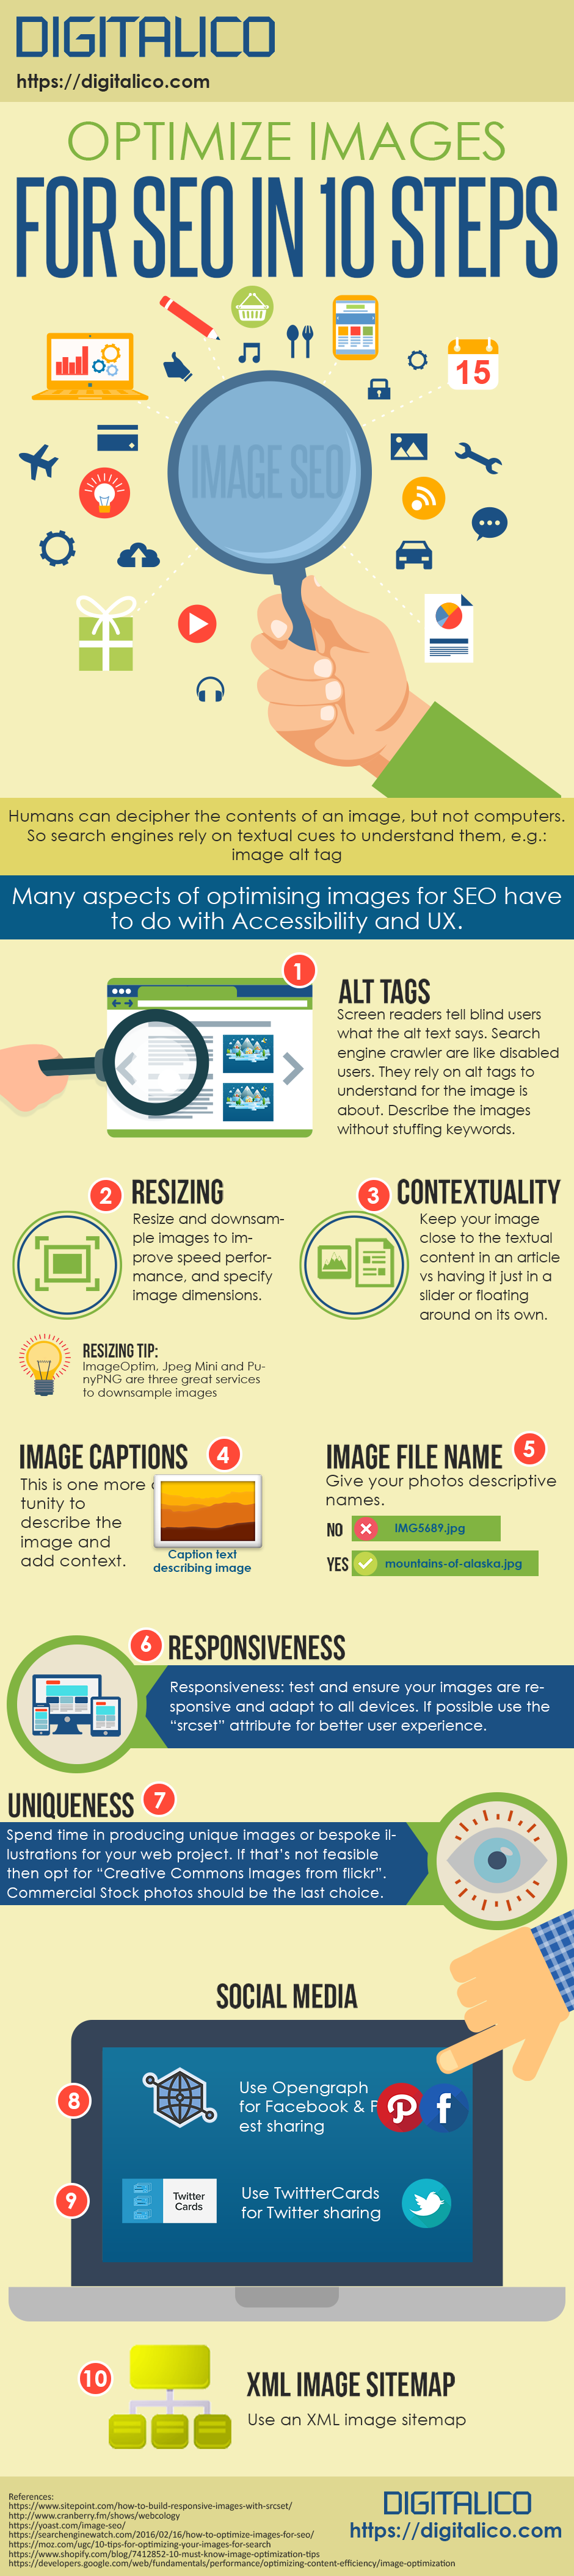 Image optimization for SEO, infographic - 940px